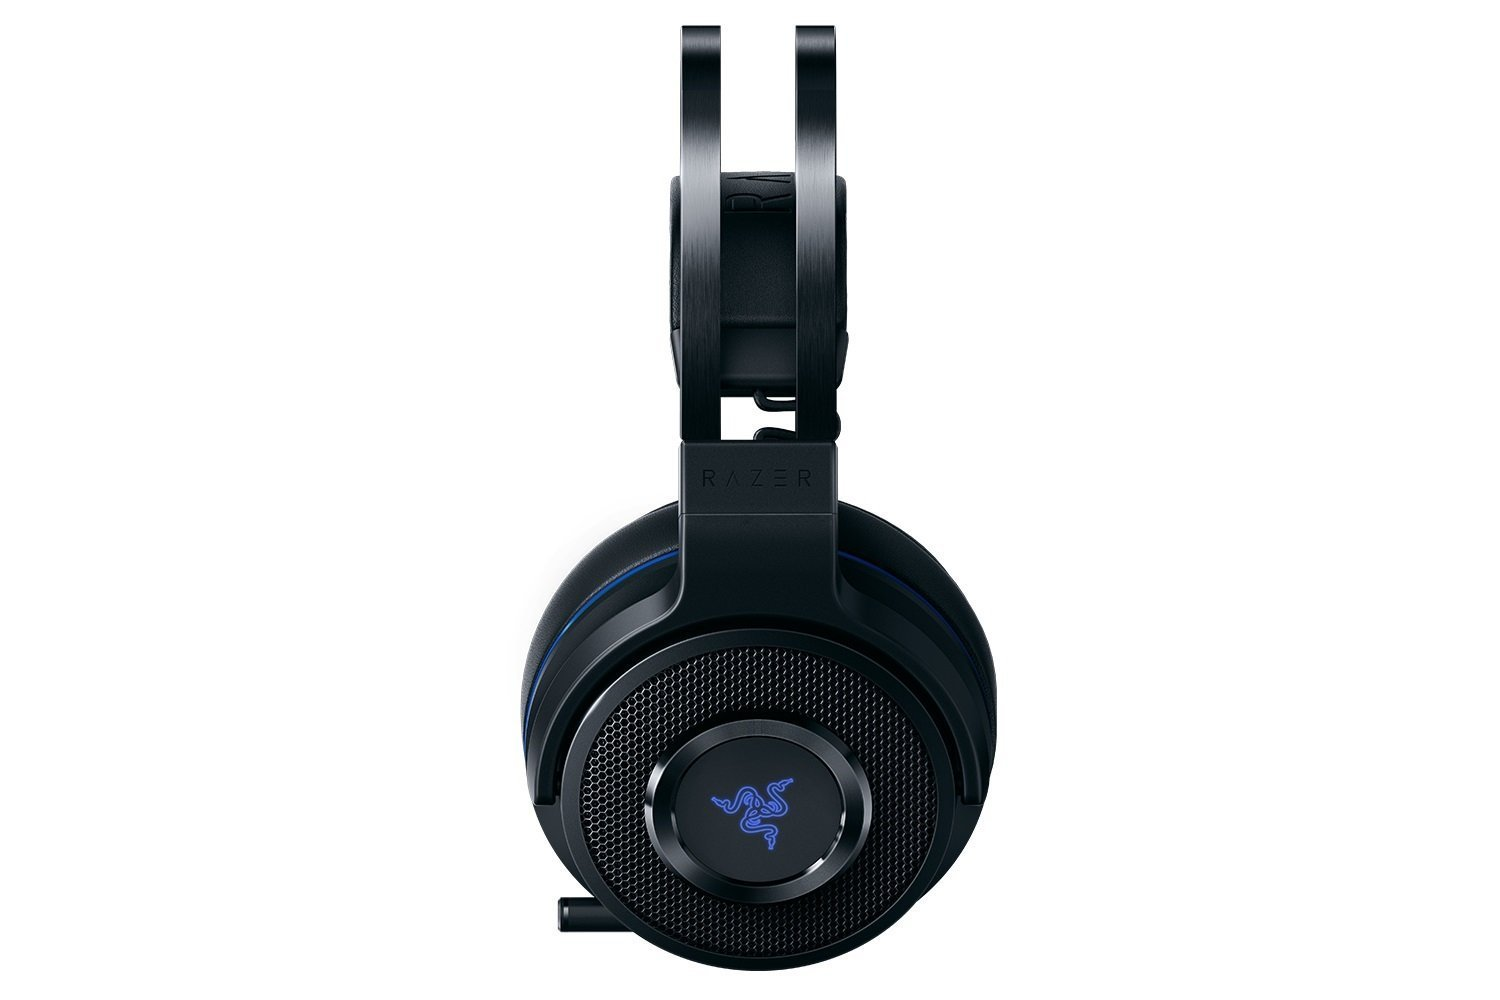 Razer Thresher 7.1 Wireless Gaming Headset - PS4 for PS4 image